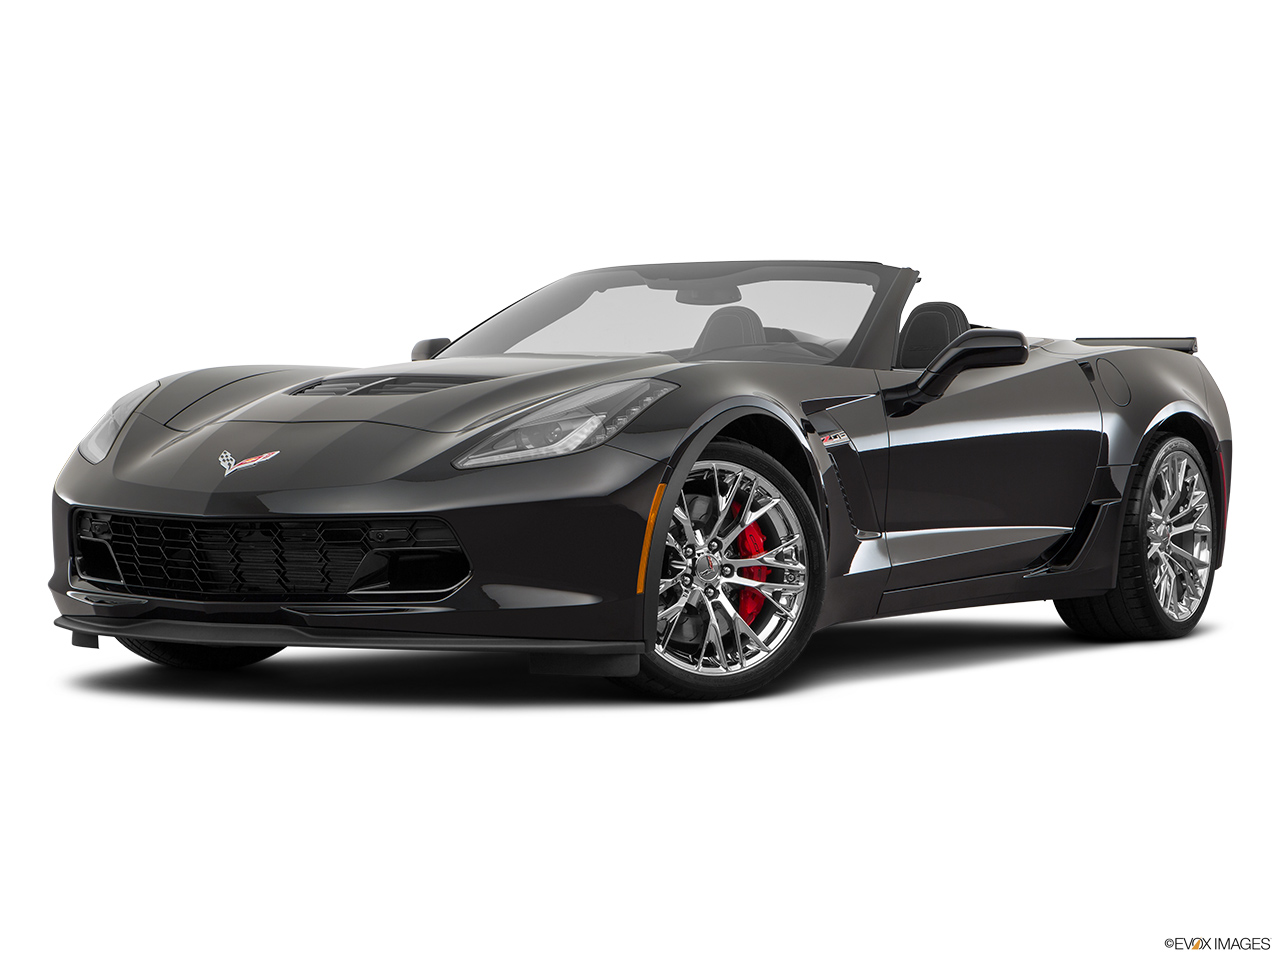 2018 corvette lease deals